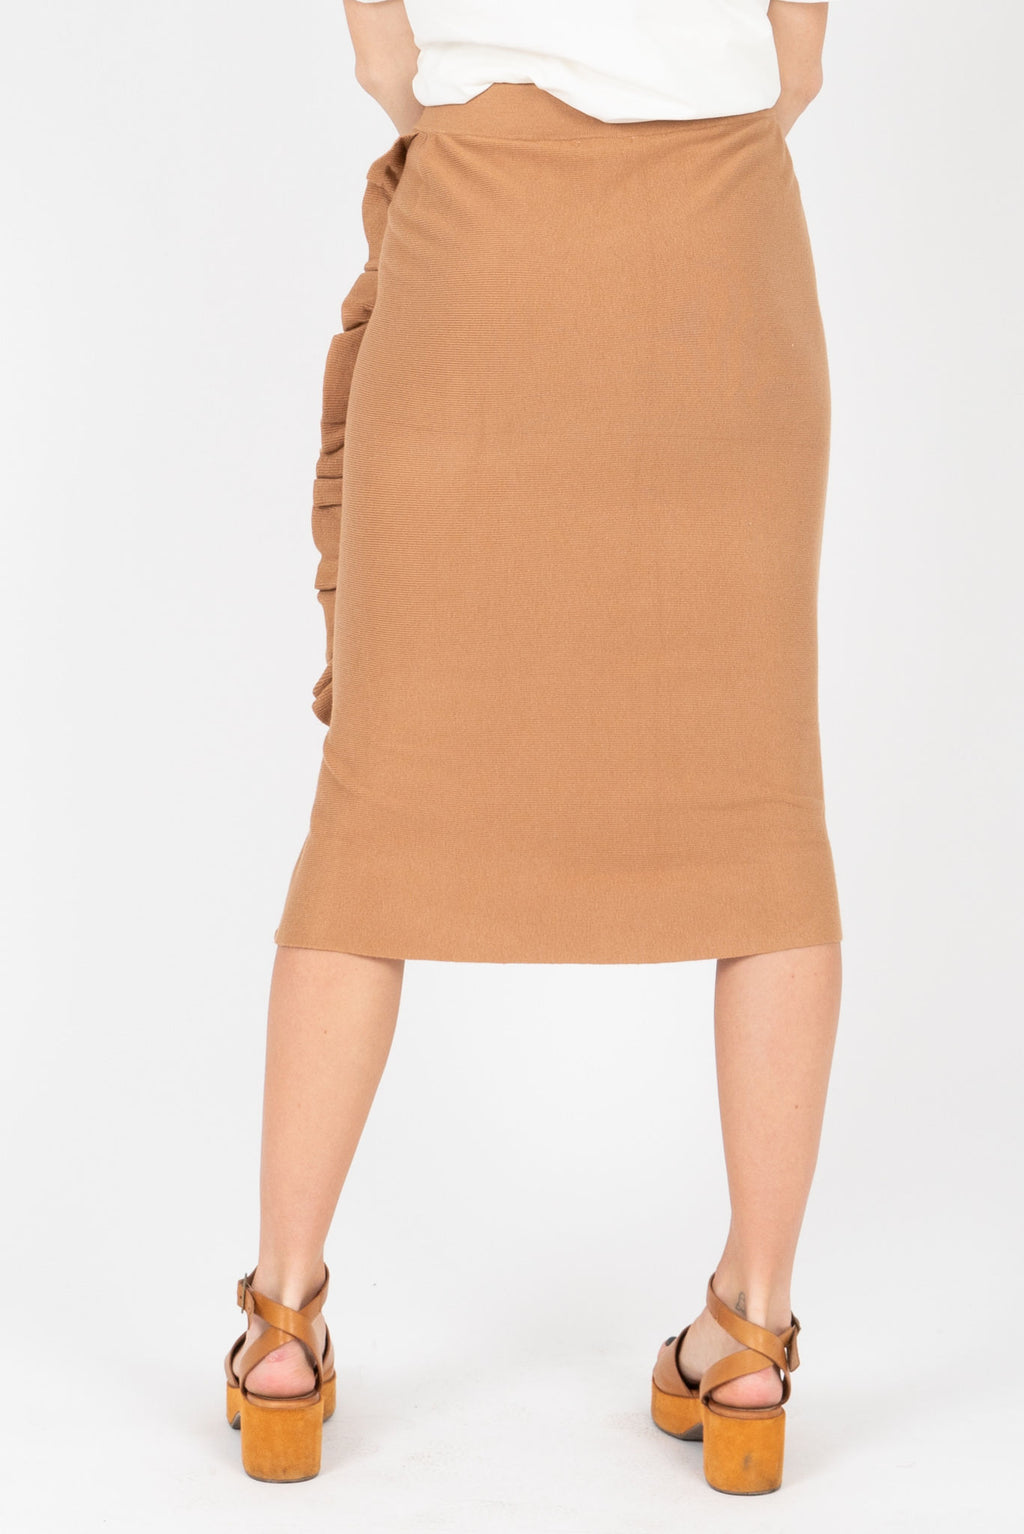 The Cyrus Ruffle Detail Knit Skirt in Tan, studio shoot; back view